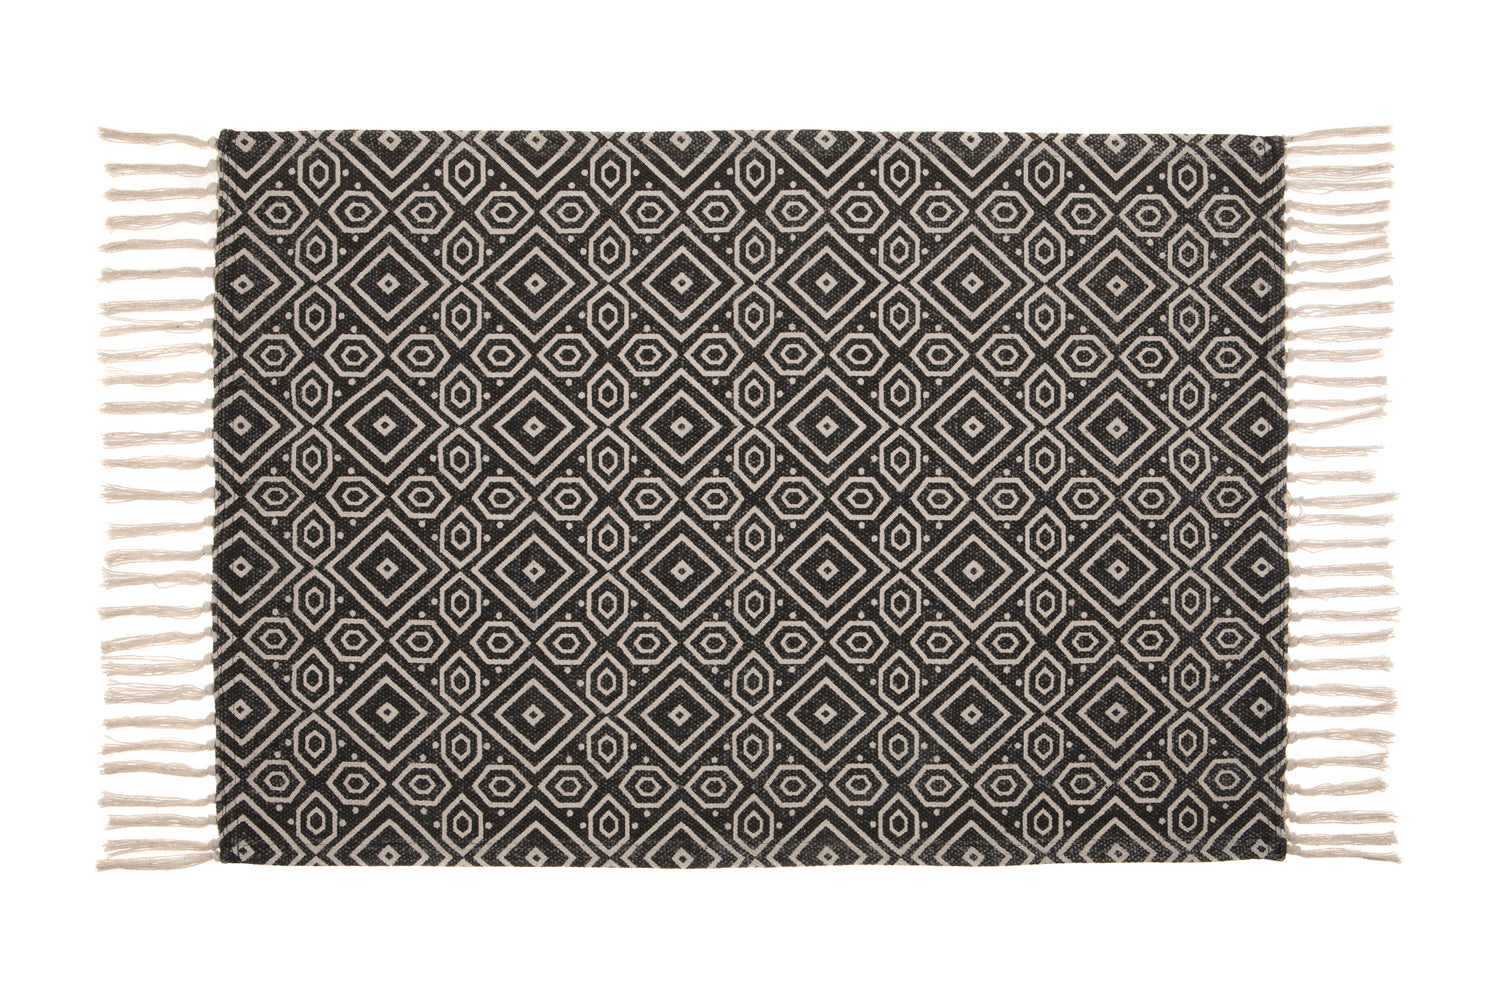 Black and White Surat Rug